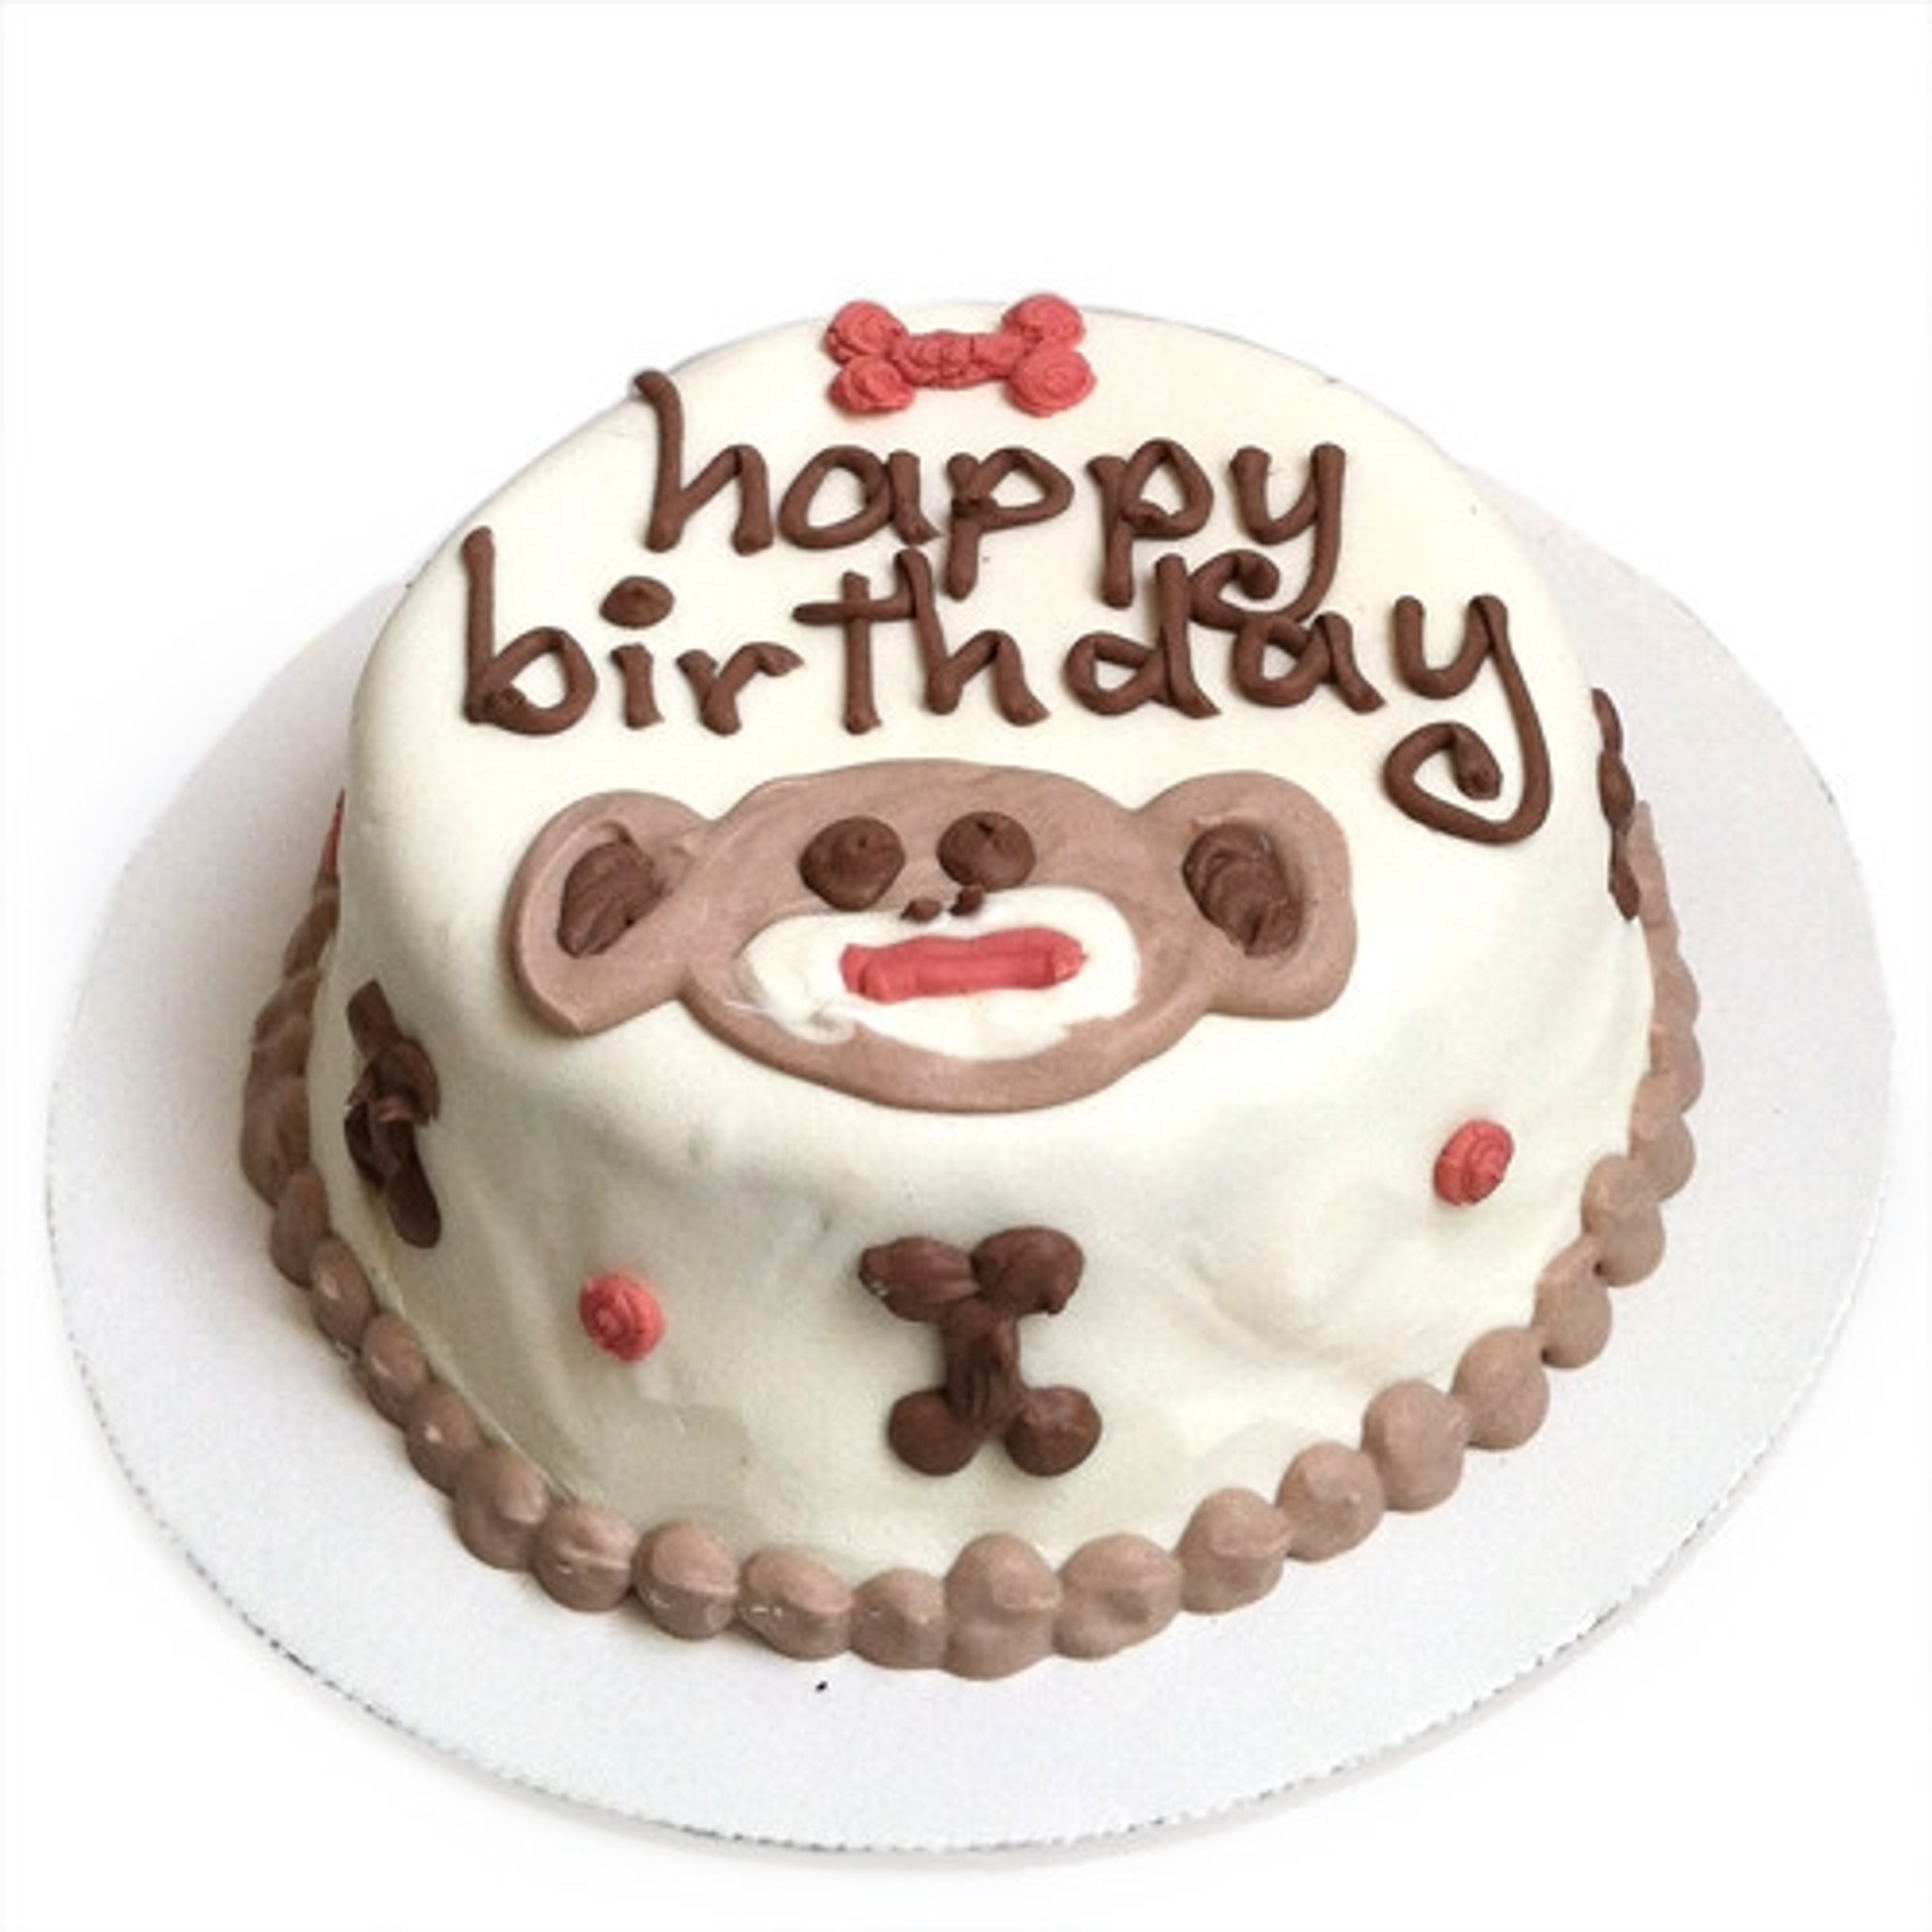 Marvelous Doggie Birthday Cakes Sock Monkey Dog Birthday Cake Funny Birthday Cards Online Barepcheapnameinfo